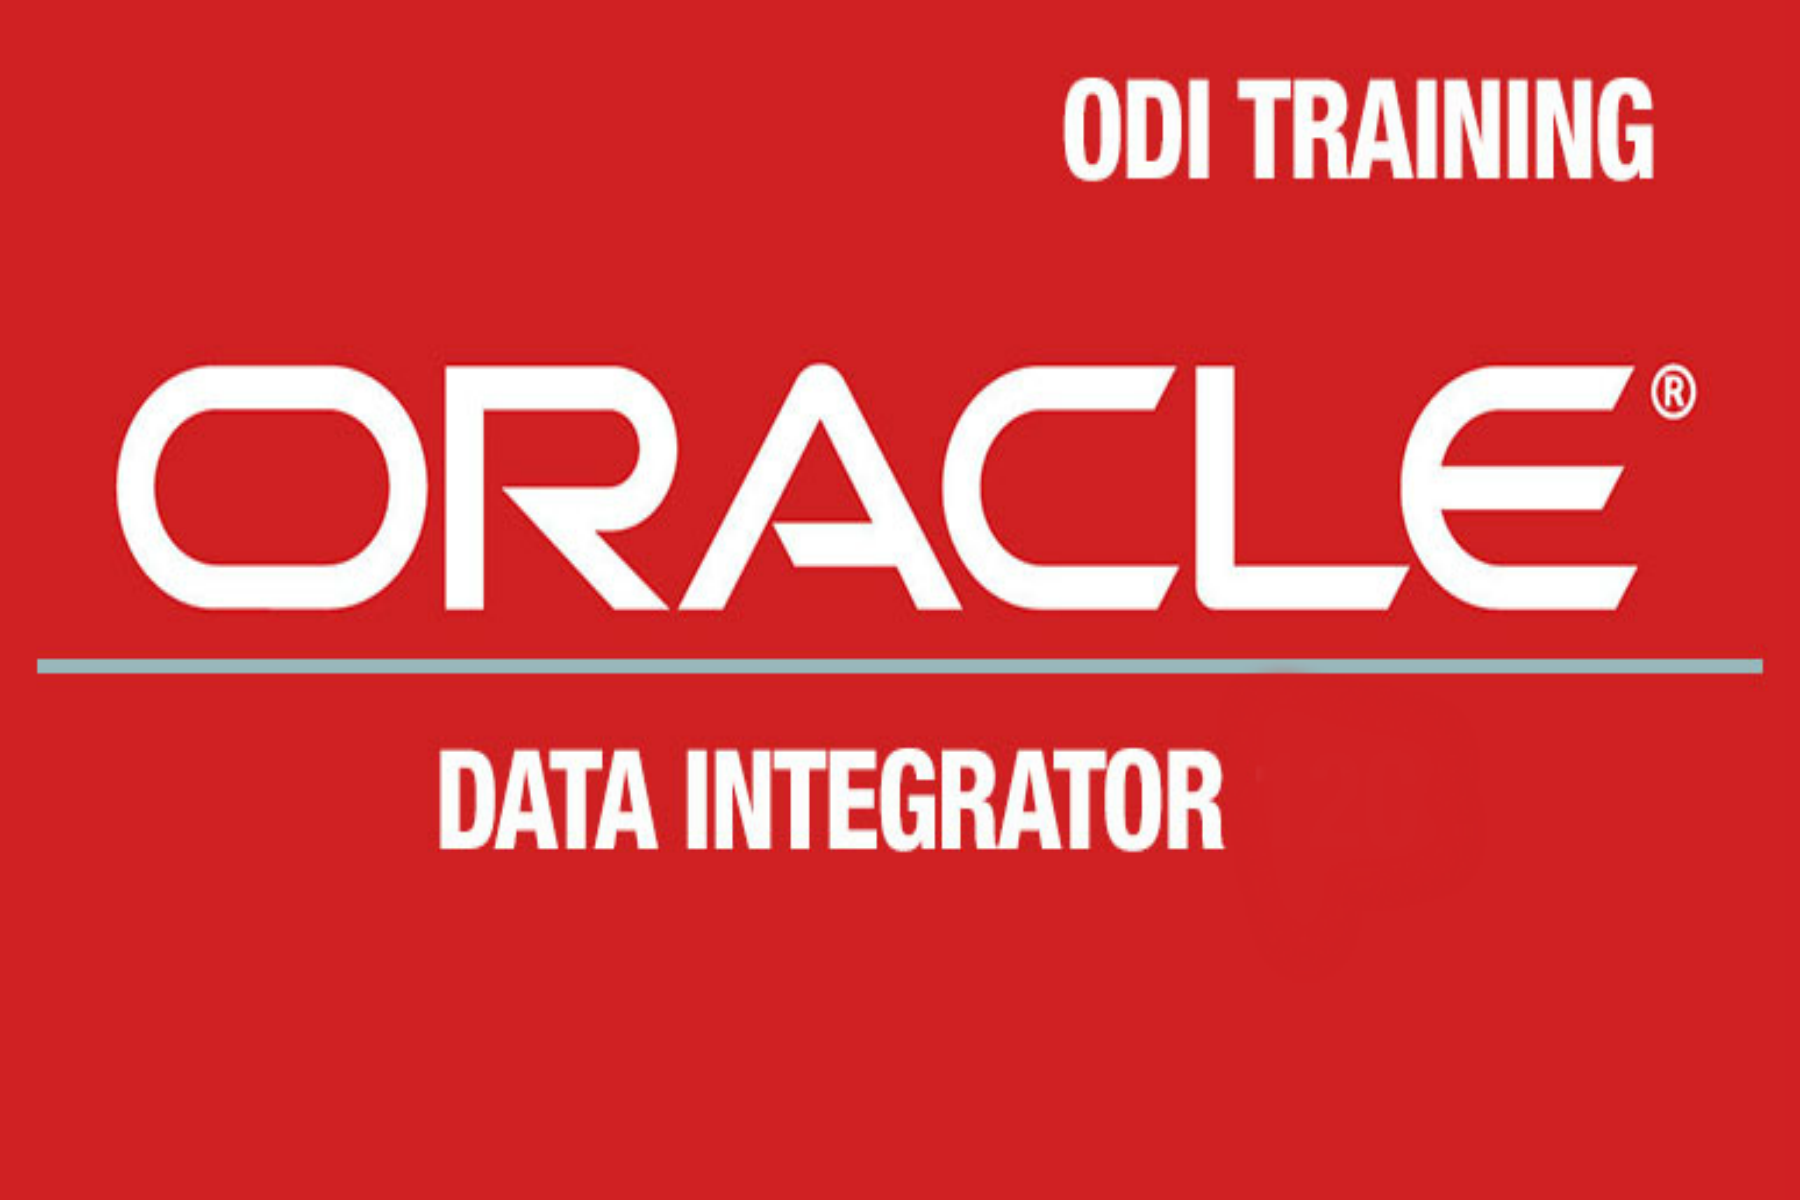 ODI Training in Chennai